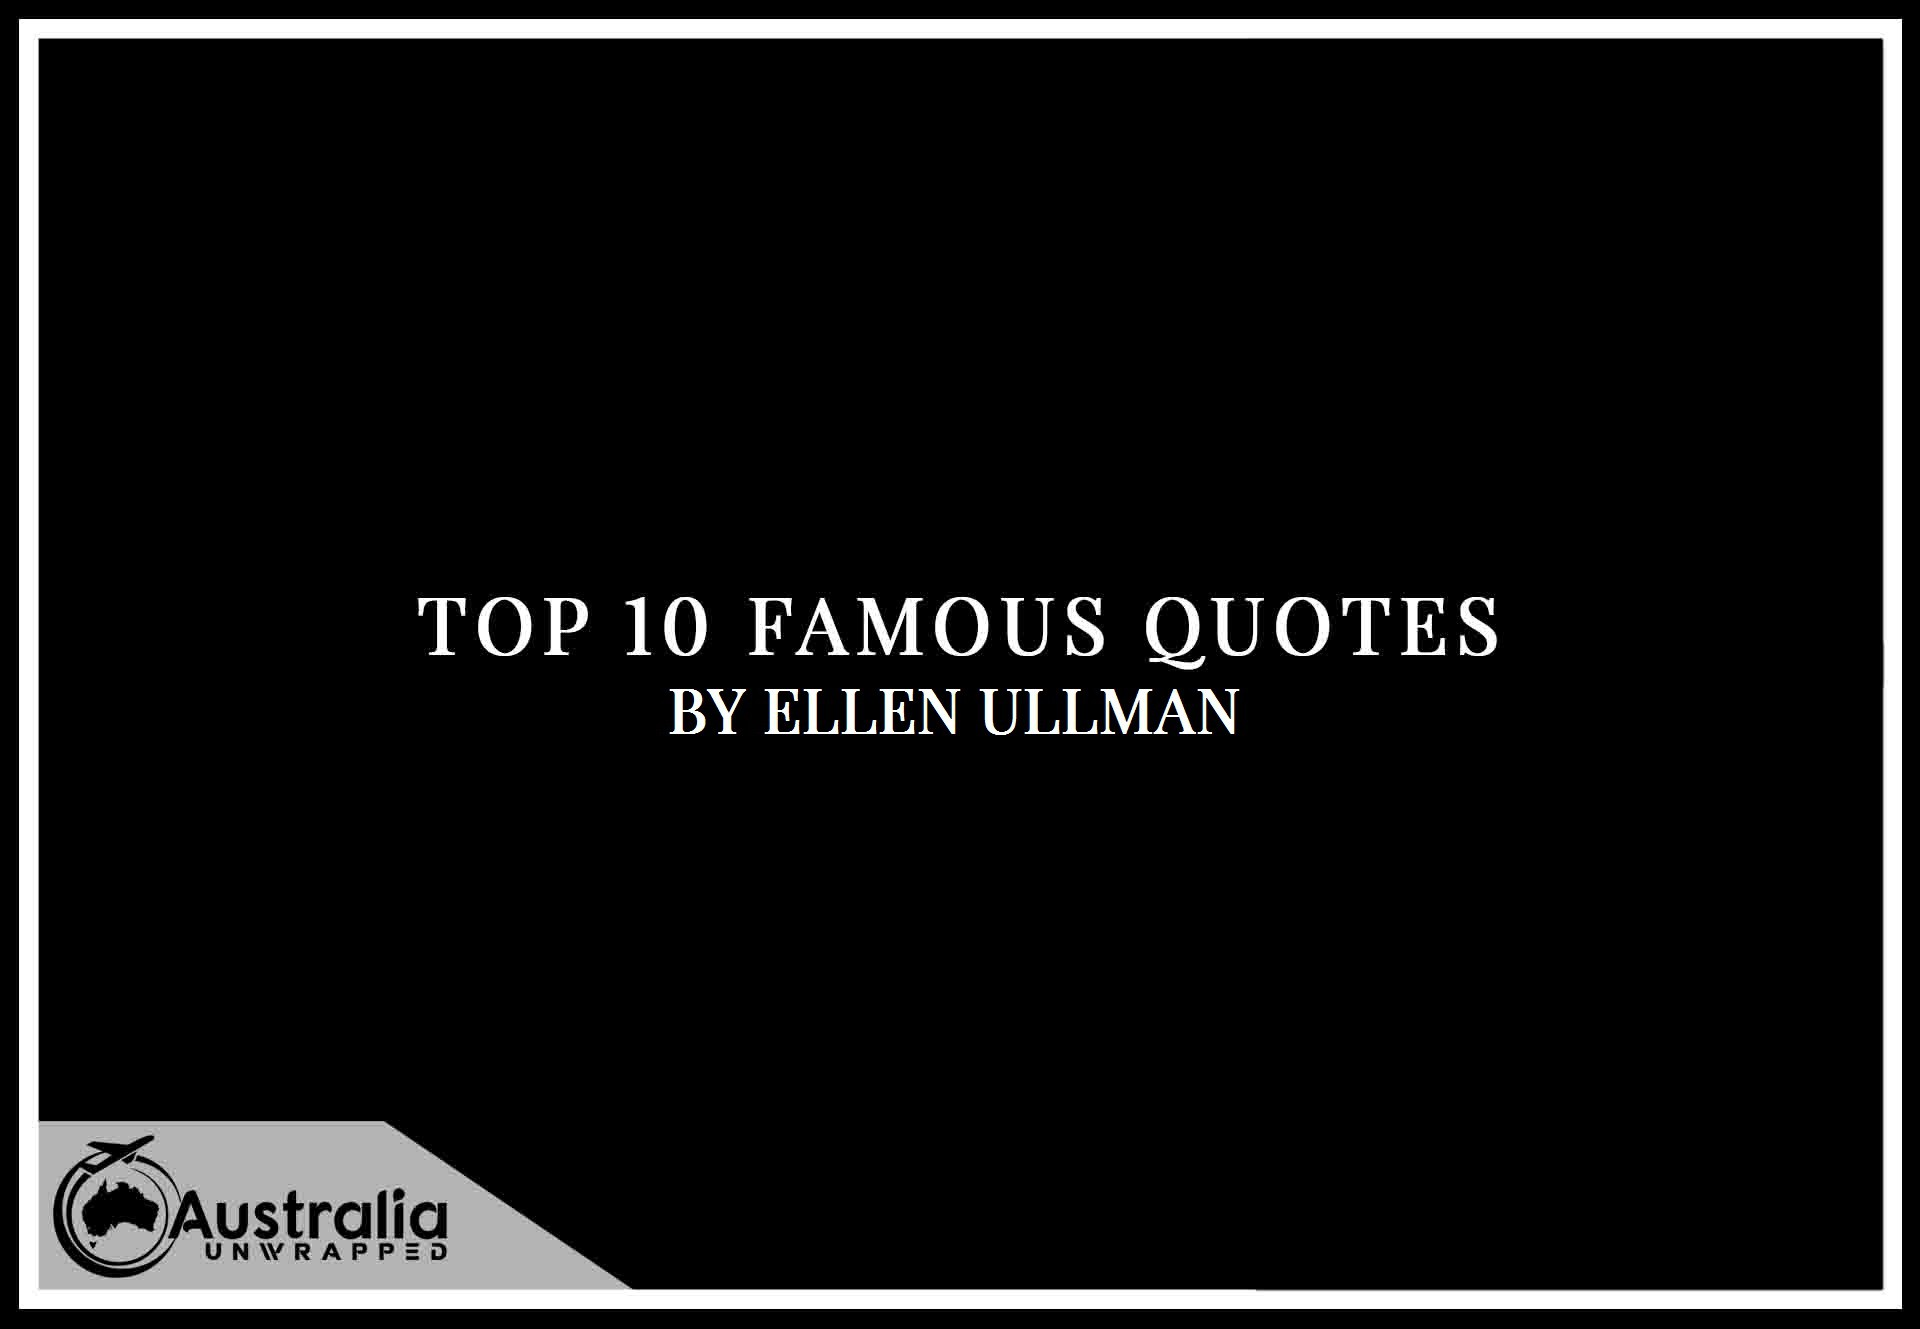 Ellen Ullman's Top 10 Popular and Famous Quotes